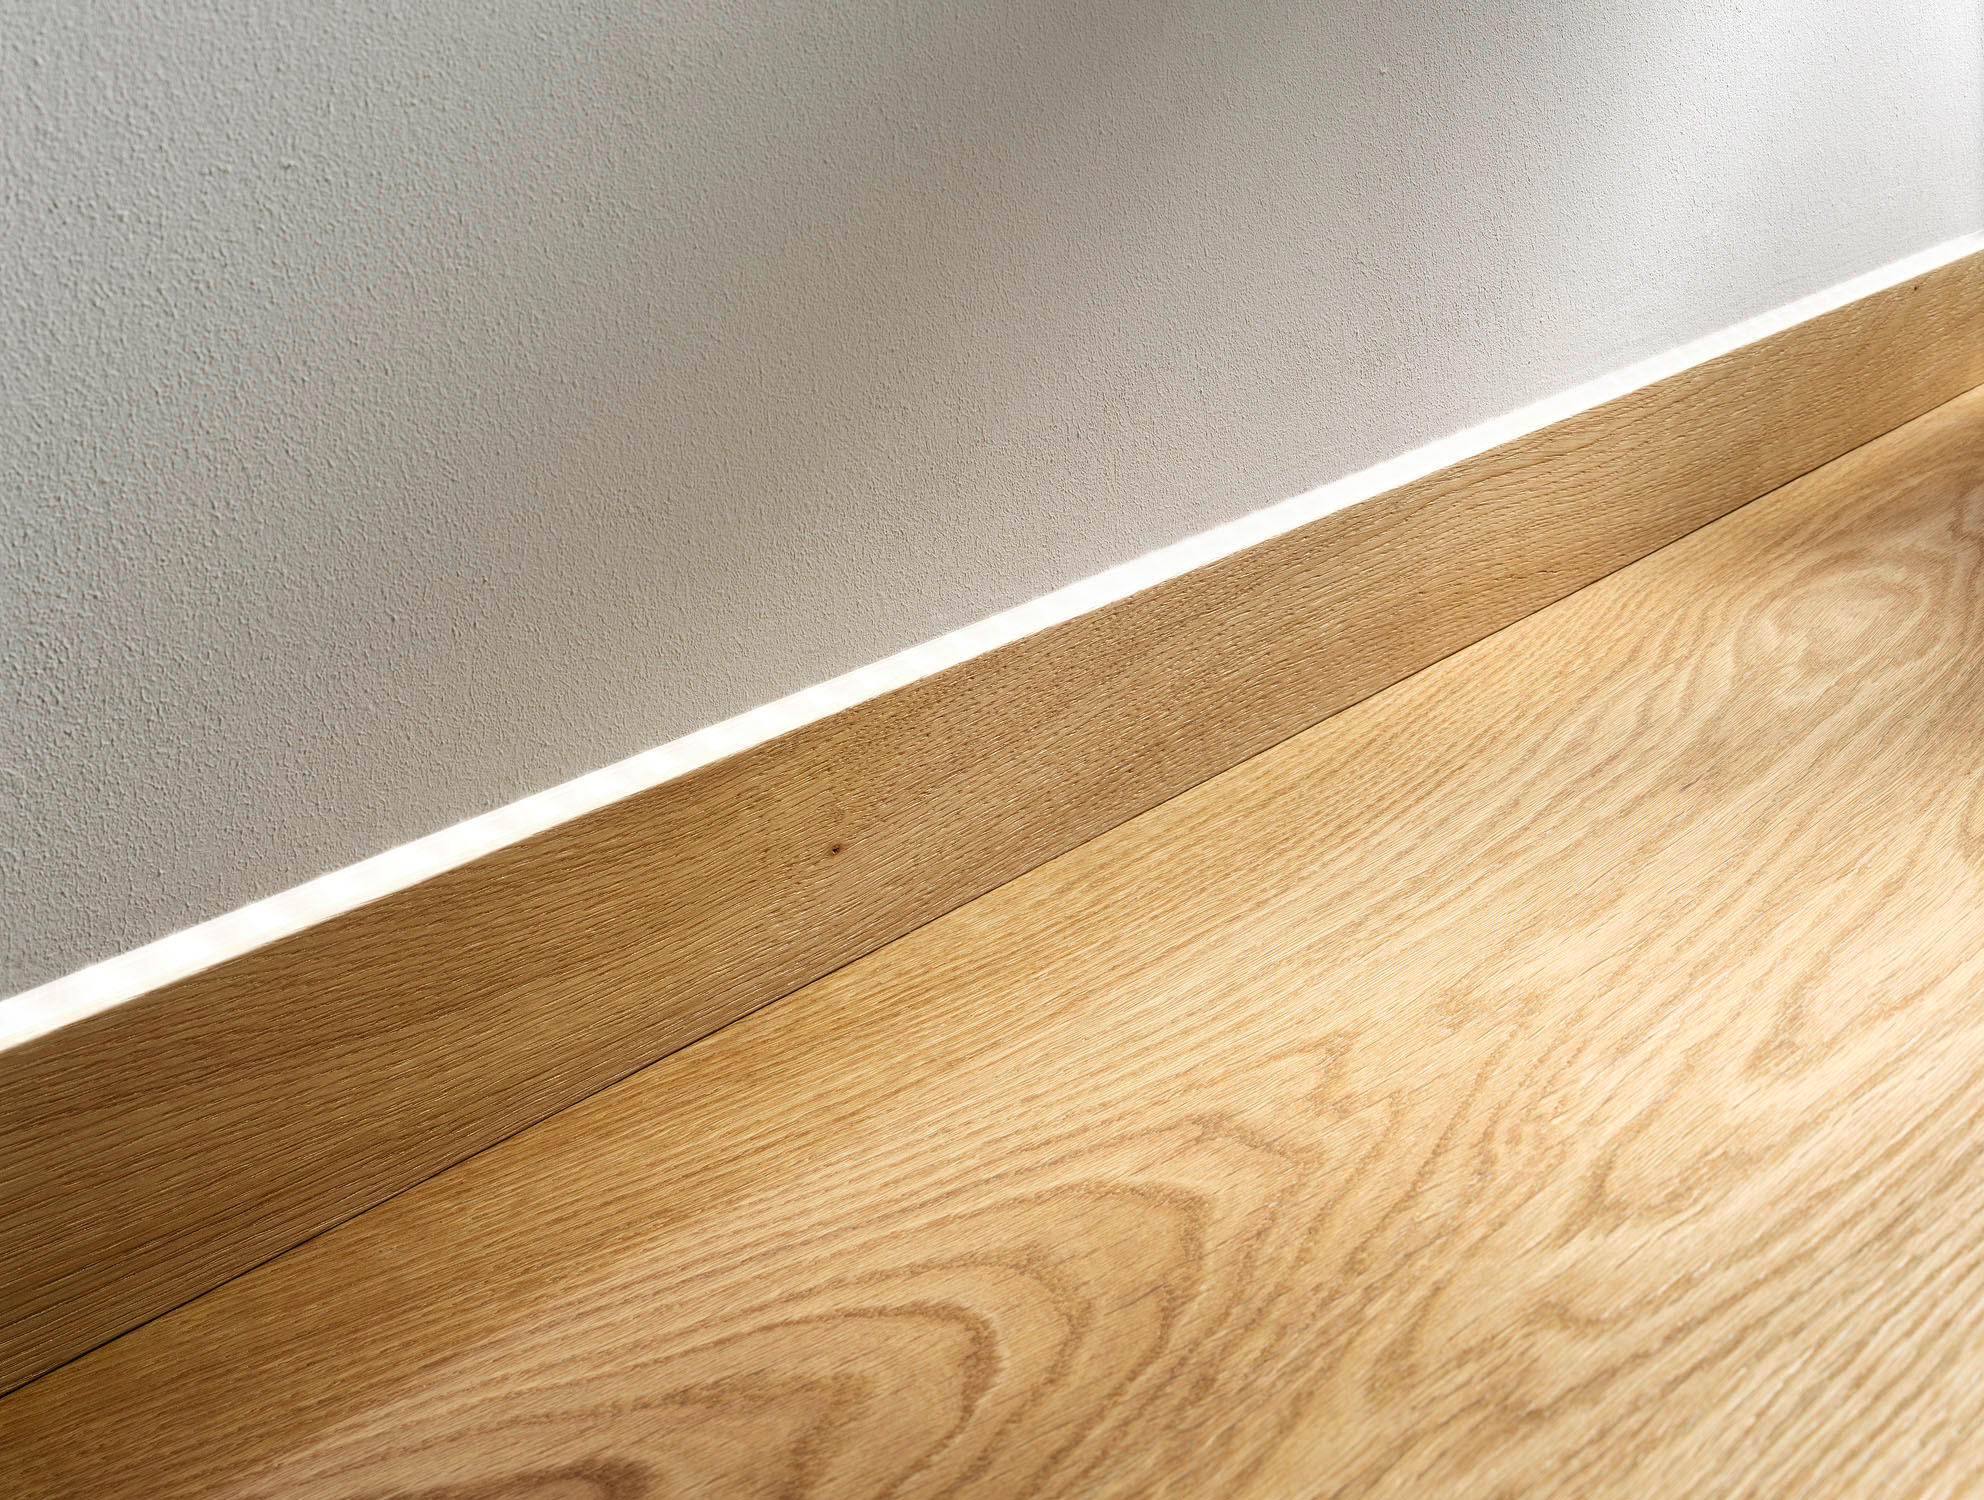 Flush Mount Skirting Board With Led By Admonter Holzindustrie Ag Baseboards